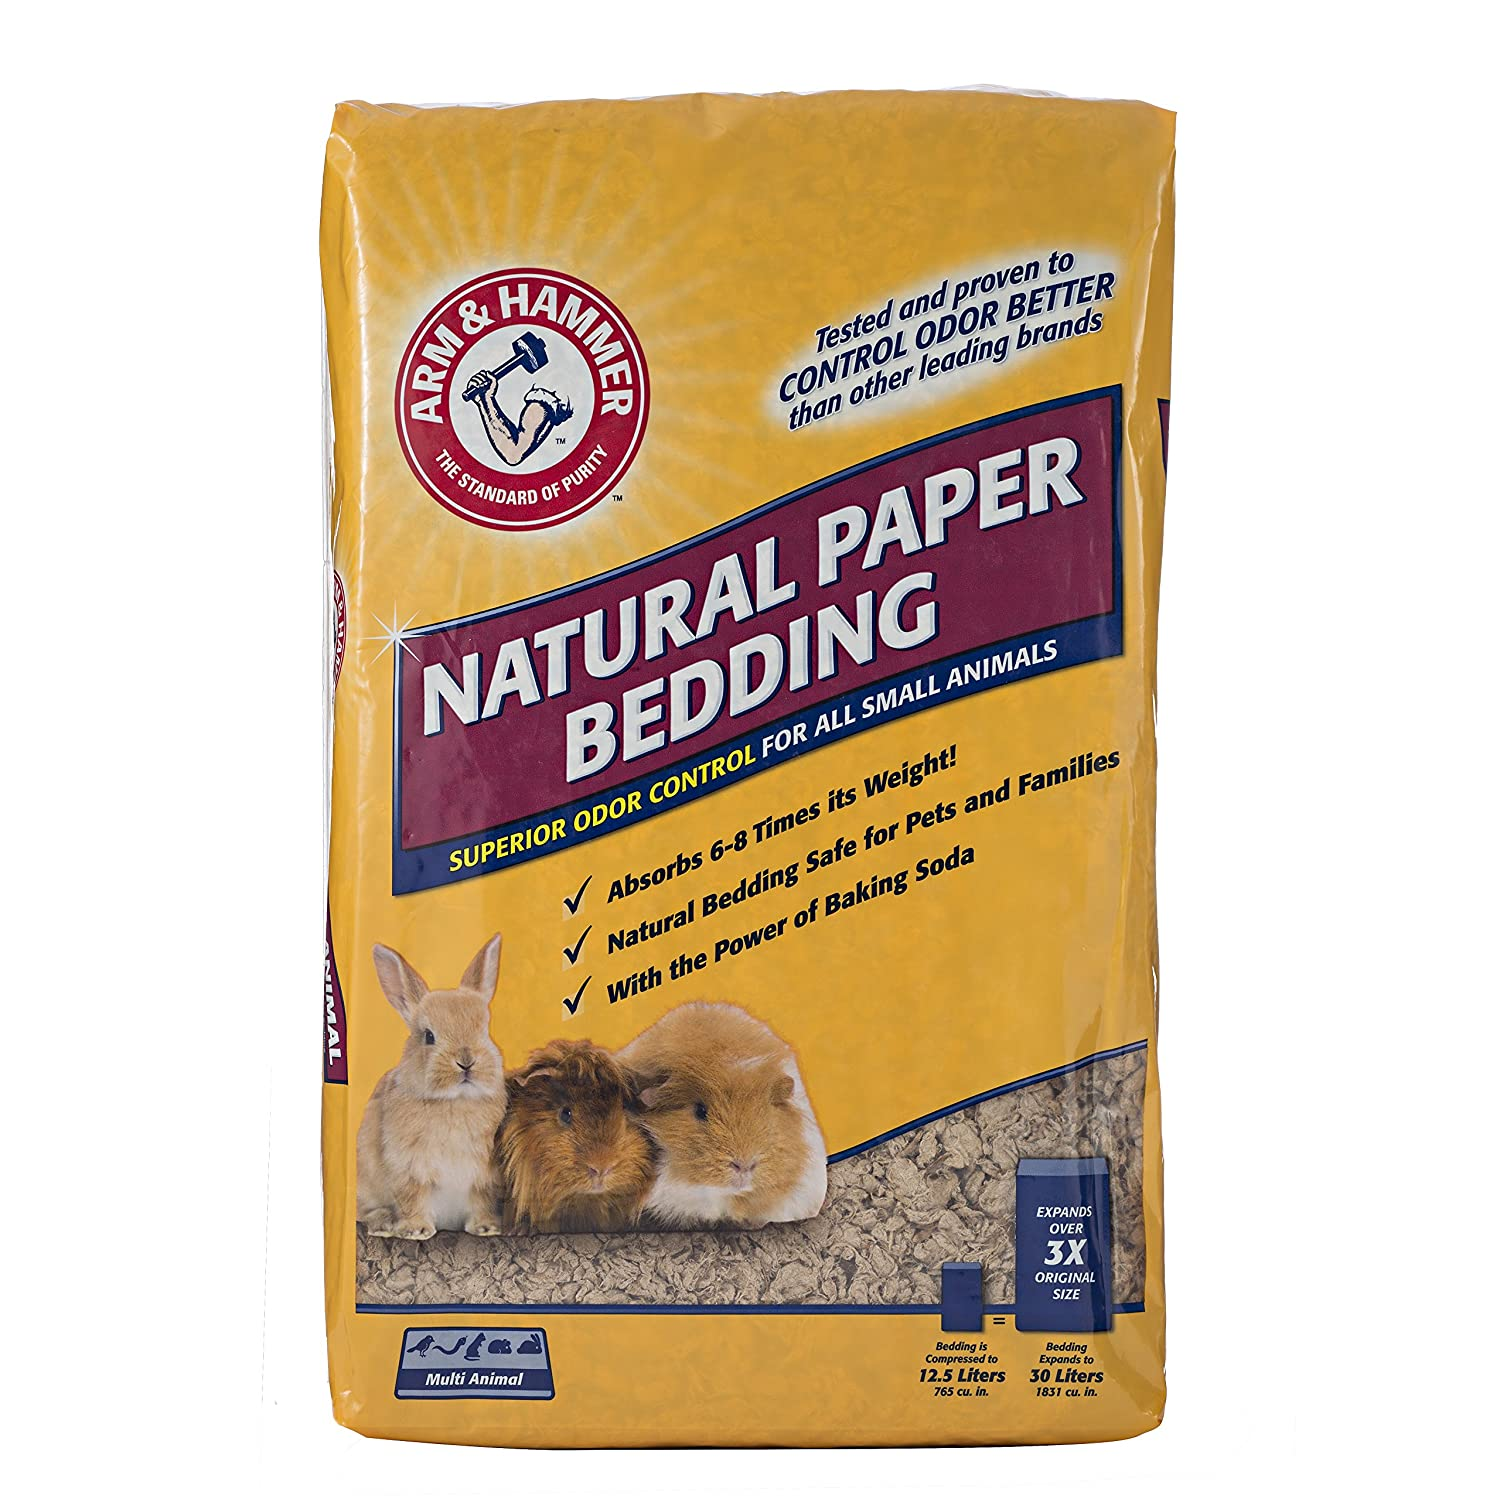 Arm & Hammer Natural Paper Bedding for Small Animal Cages | Absorbs Urine & Eliminates Odor with The Power of Baking Soda | for Guinea Pigs, Hamsters, Rabbits & All Small Animals